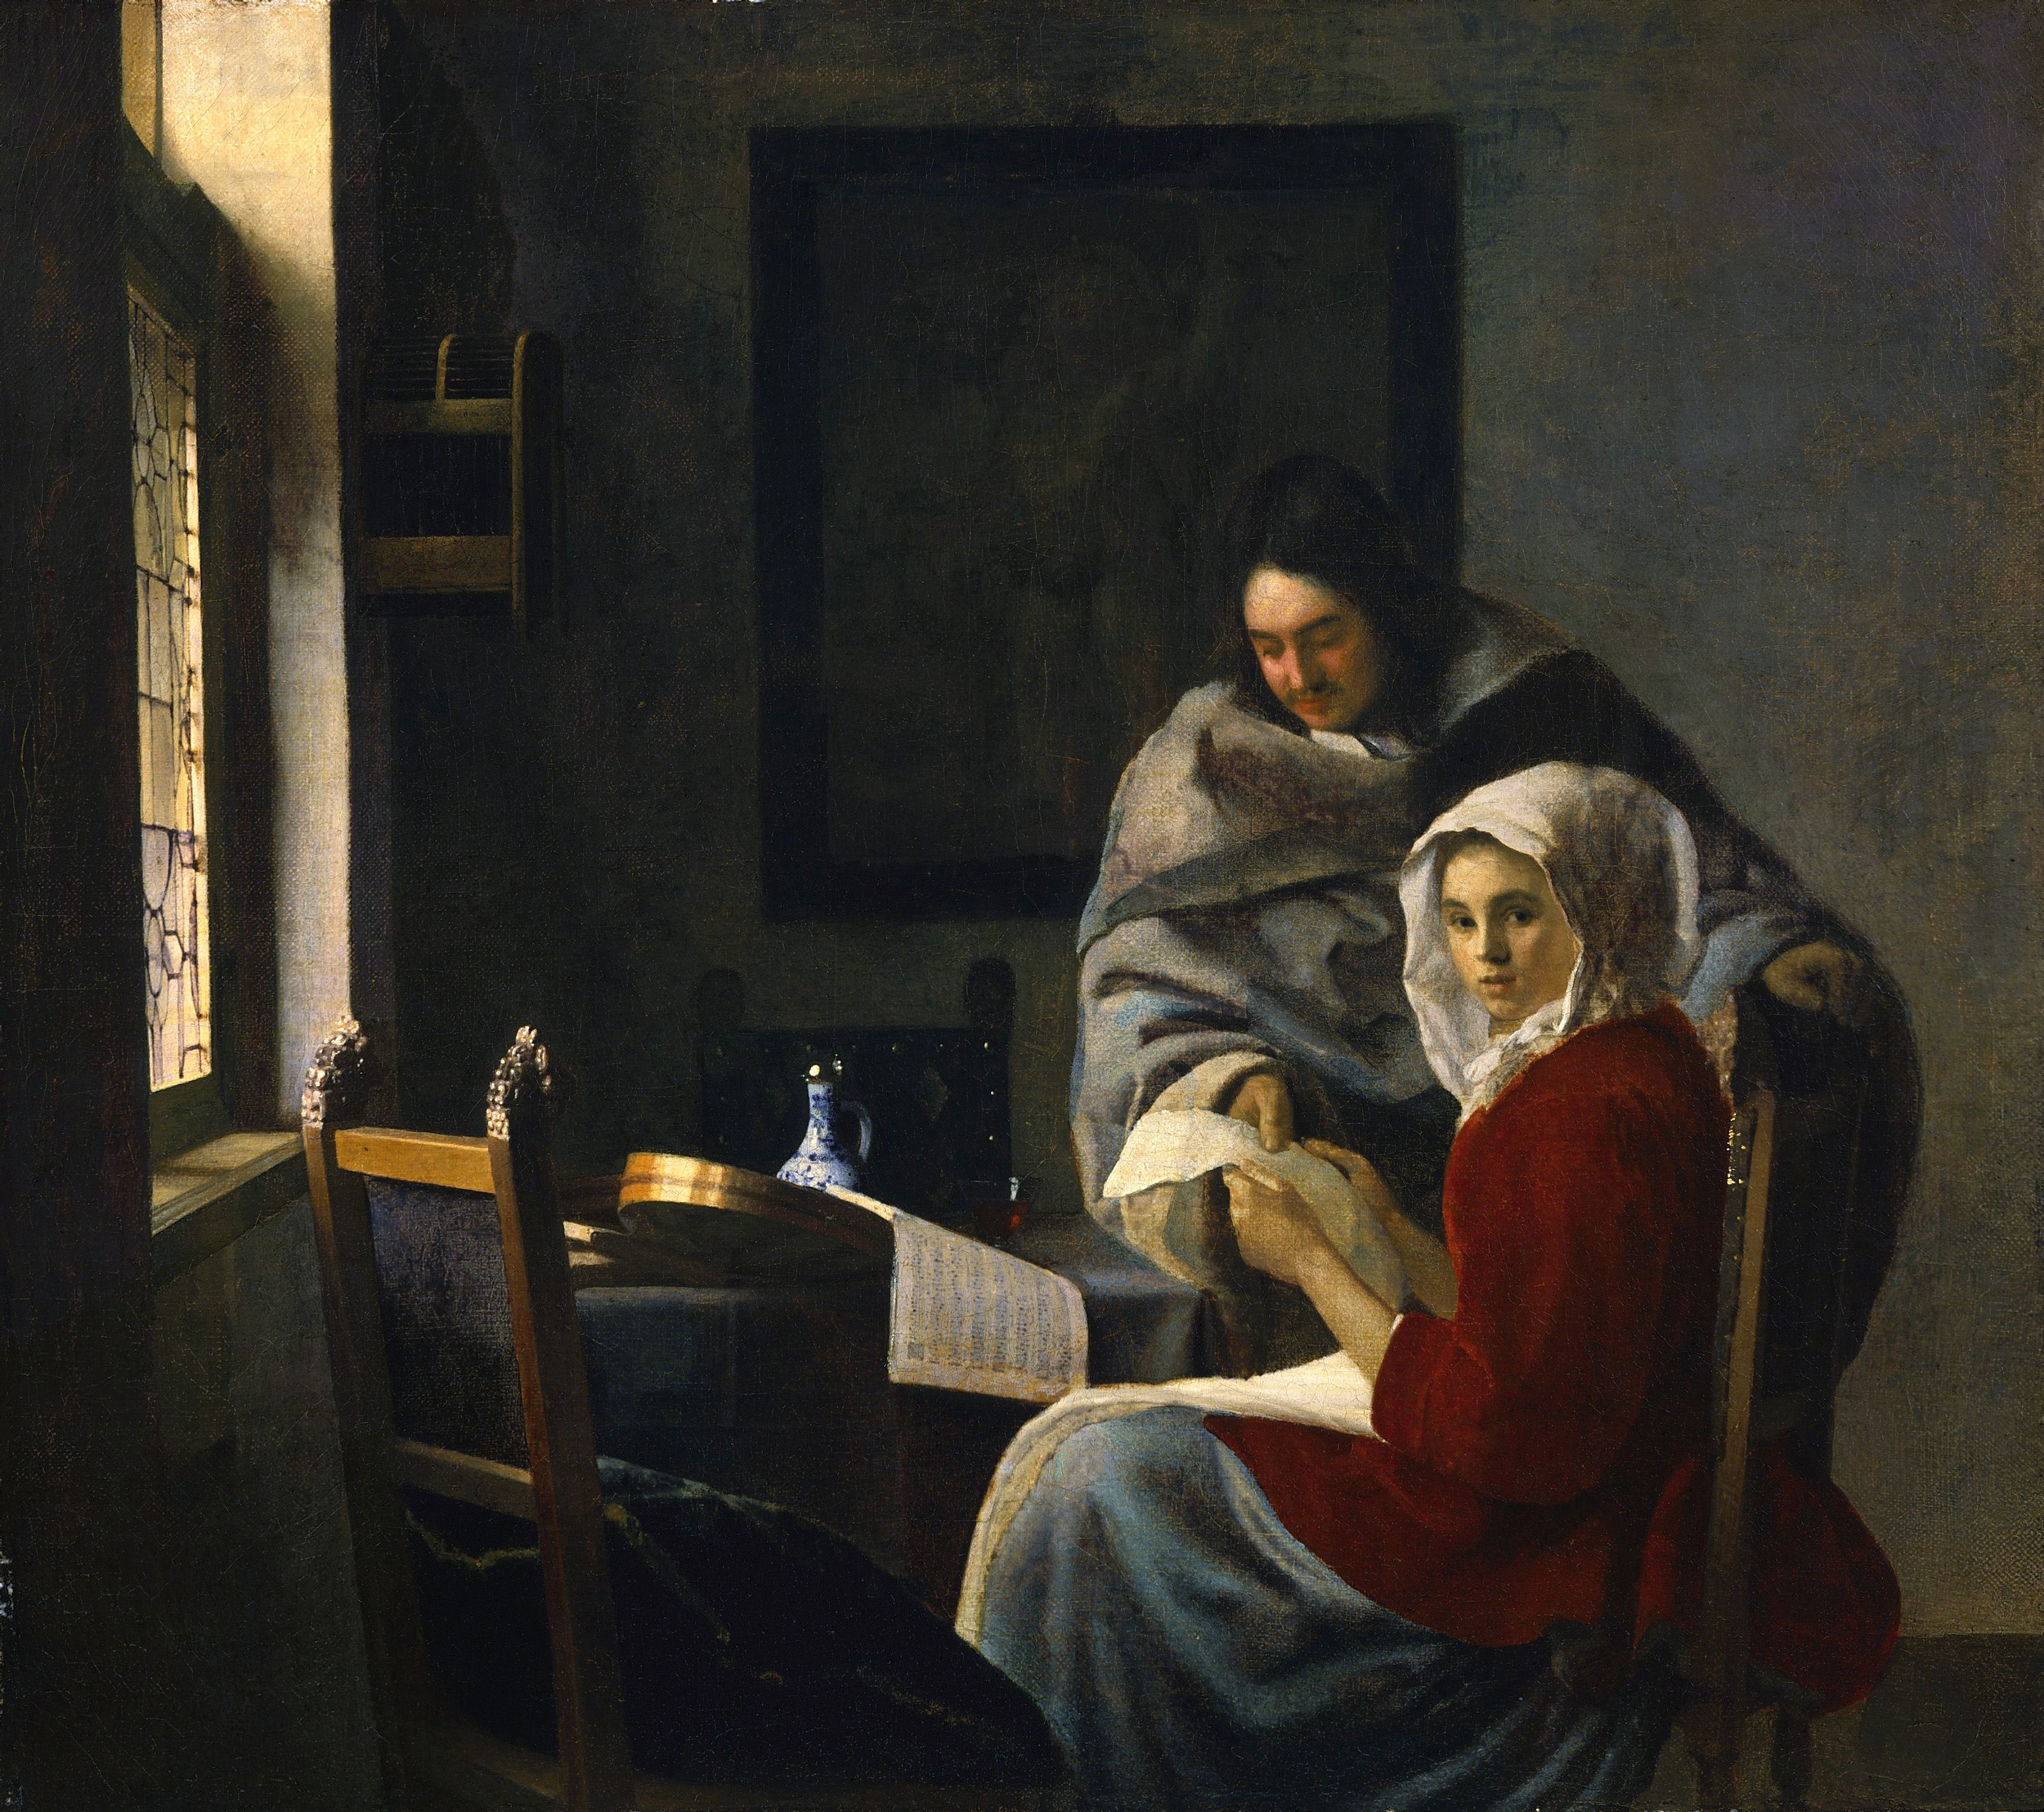 Johannes Vermeer, Girl Interrupted at Her Music, 1658-59, Oil on canvas